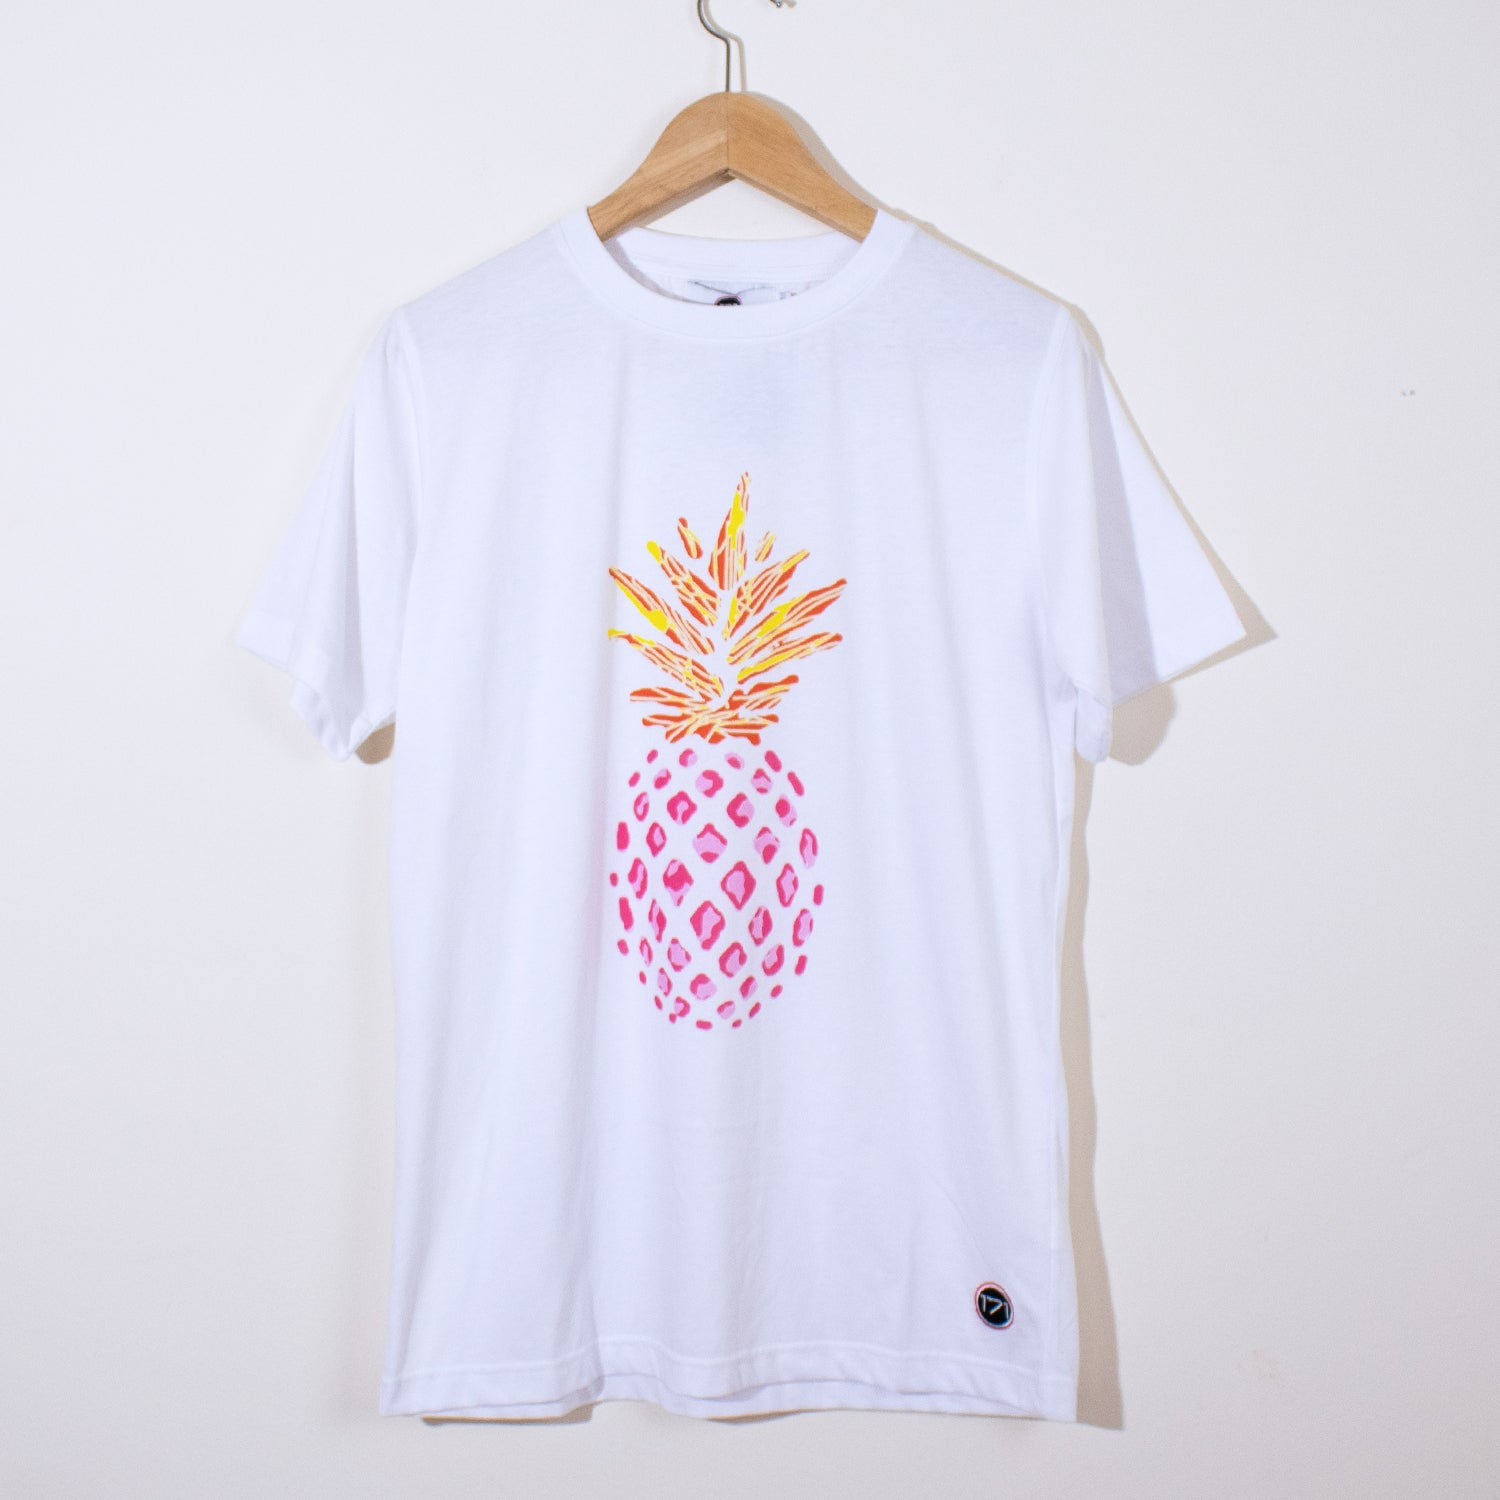 T-shirt Pineapple 171